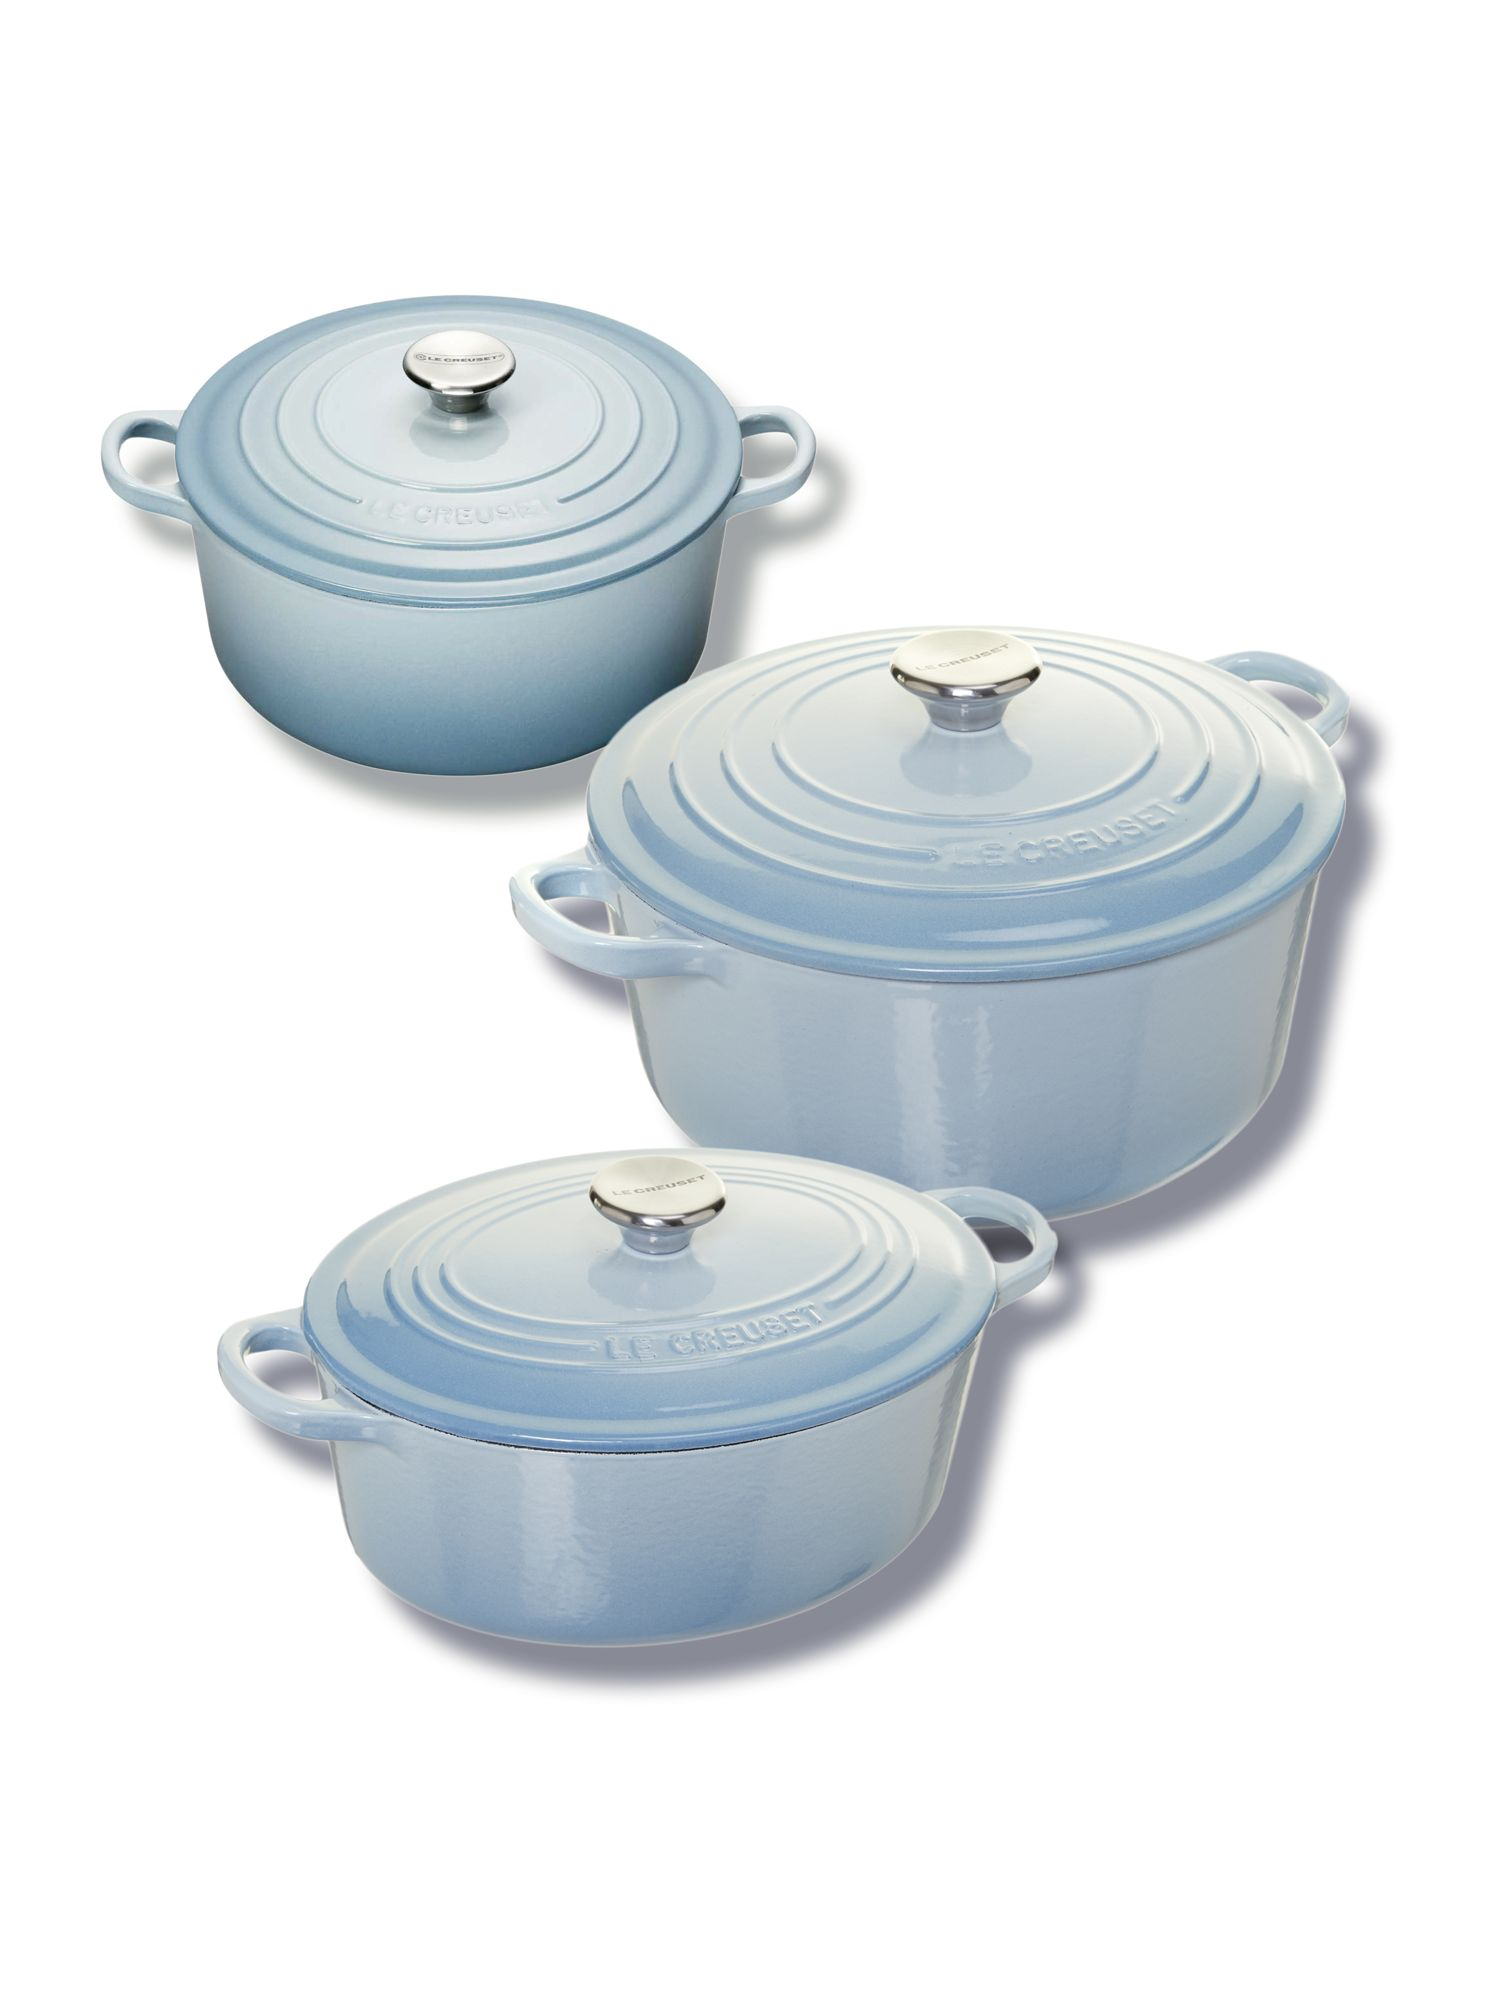 Cast Iron cookware in Coastal Blue